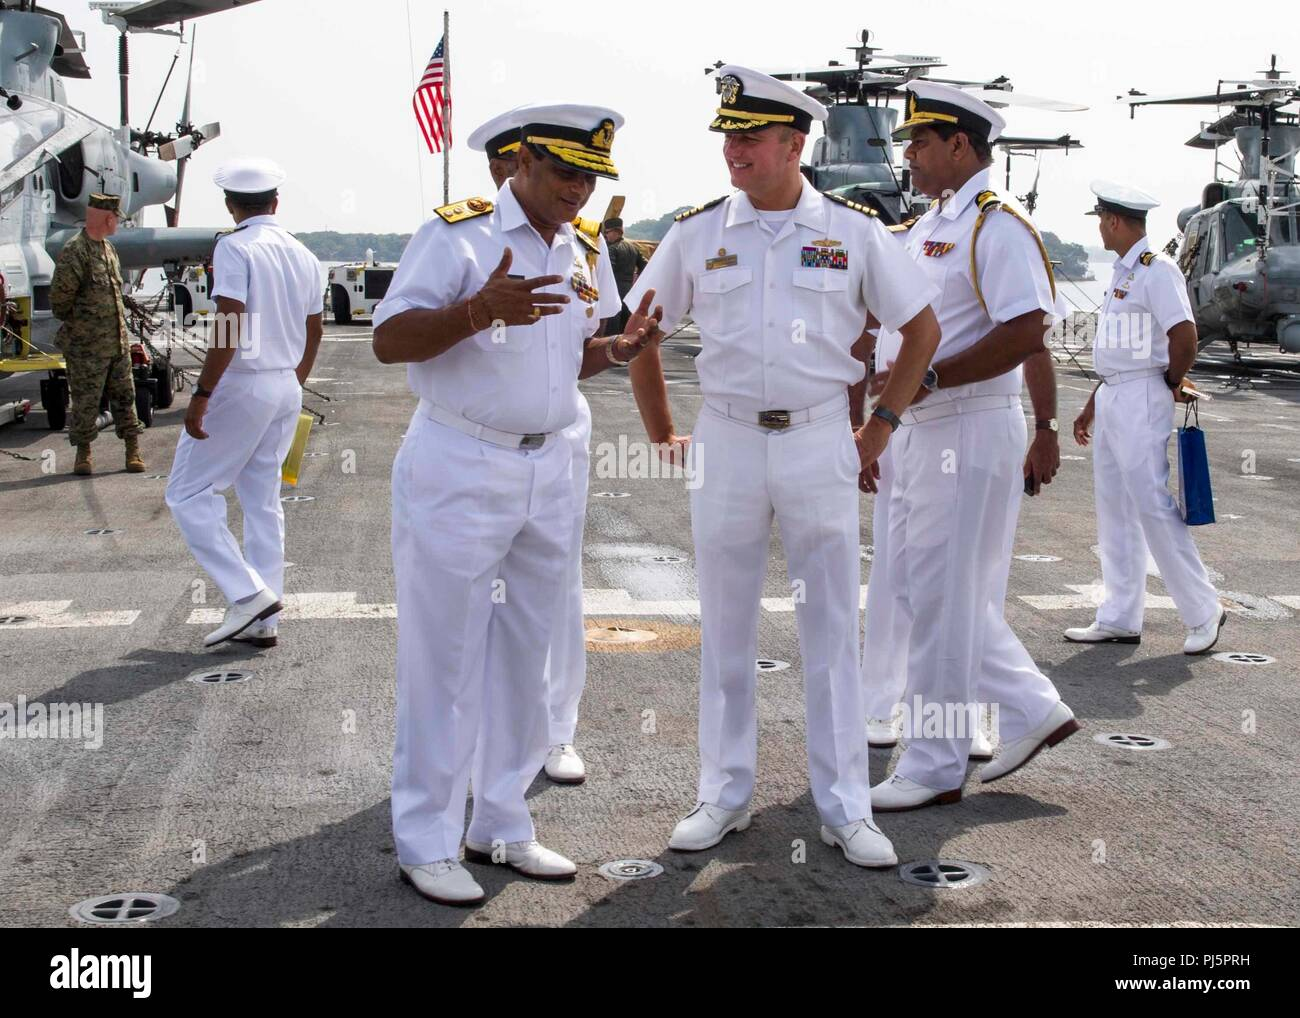 180825-N-PH222-0308 TRINCOMALEE, SRI LANKA (Aug. 25, 2018) Capt. Dennis Jacko, commanding officer of San Antonio-class amphibious transport dock USS Anchorage (LPD 23), from Sayreville, N.J., talks with Sri Lanka navy Rear Adm. SA Weerasinghe, commander, East Naval Forces, during a tour of the flight deck while on a regularly scheduled deployment of the Essex Amphibious Ready Group (ARG) and 13th Marine Expeditionary Unit (MEU). Anchorage and the embarked Marines of the 13th MEU are conducting a theater security cooperation exercise with the Sri Lankan navy and marines. Part of a growing U.S.- - Stock Image